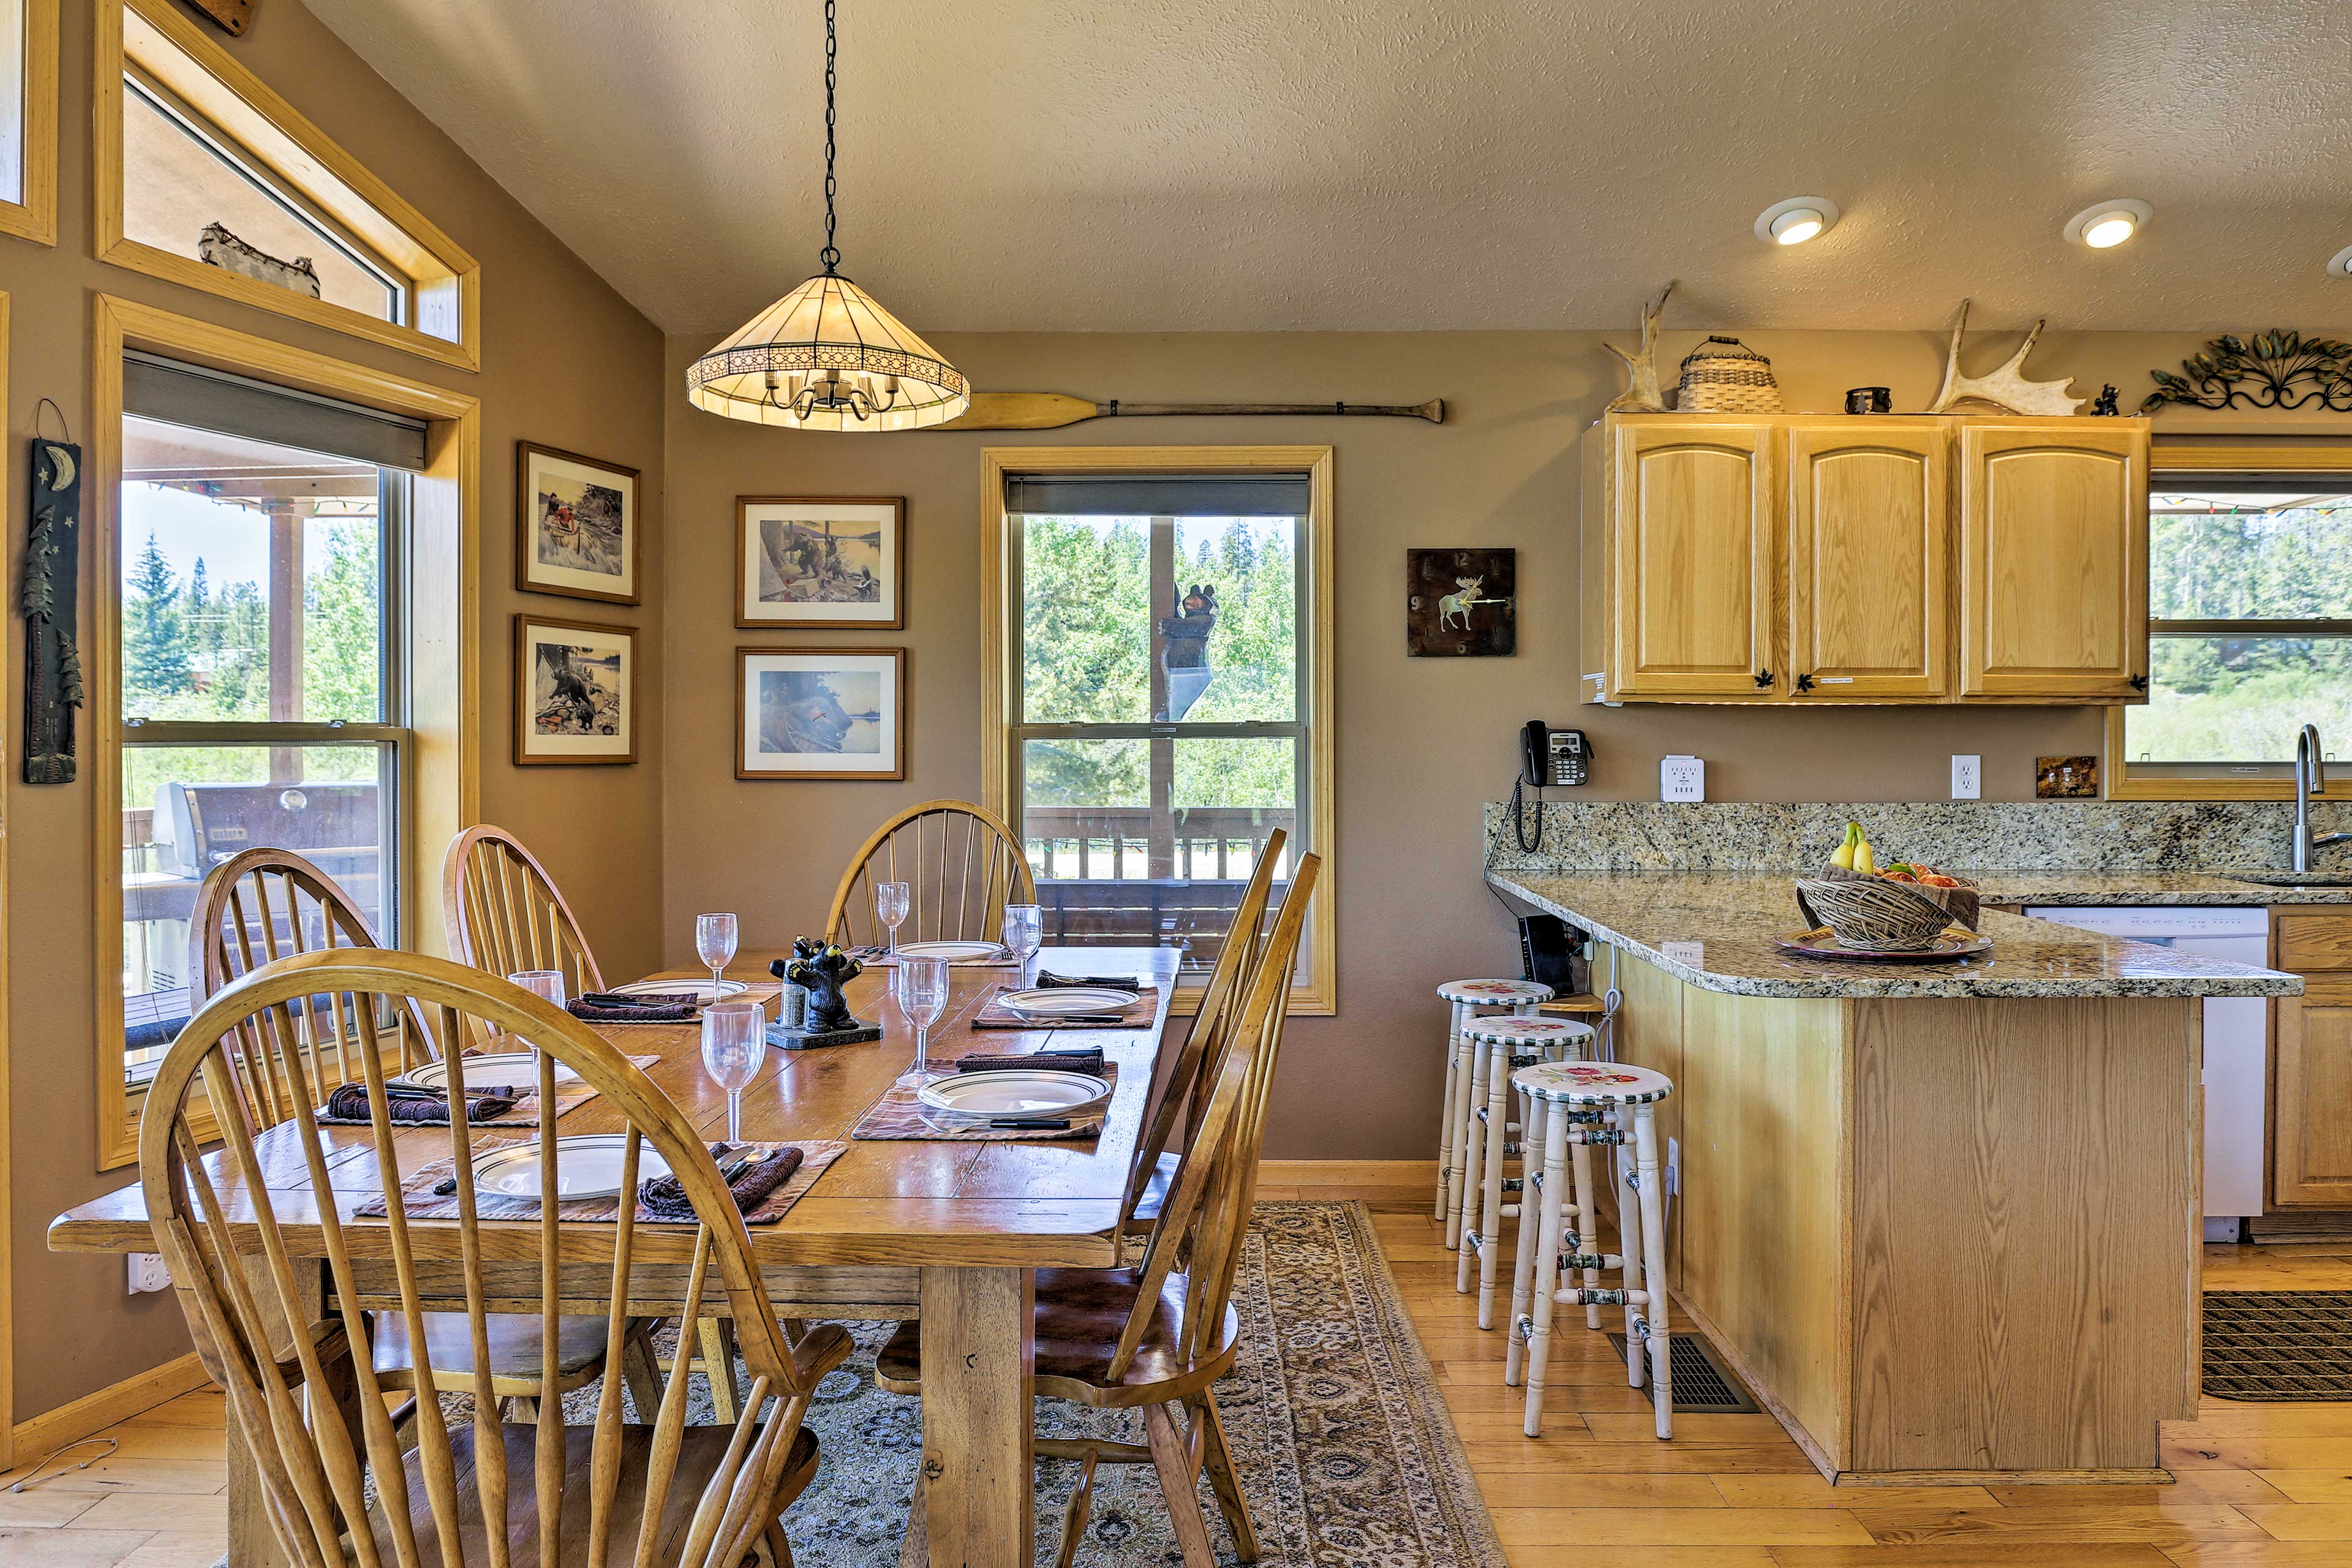 Set the table for a home-cooked meal prepared in the kitchen by the master chef.